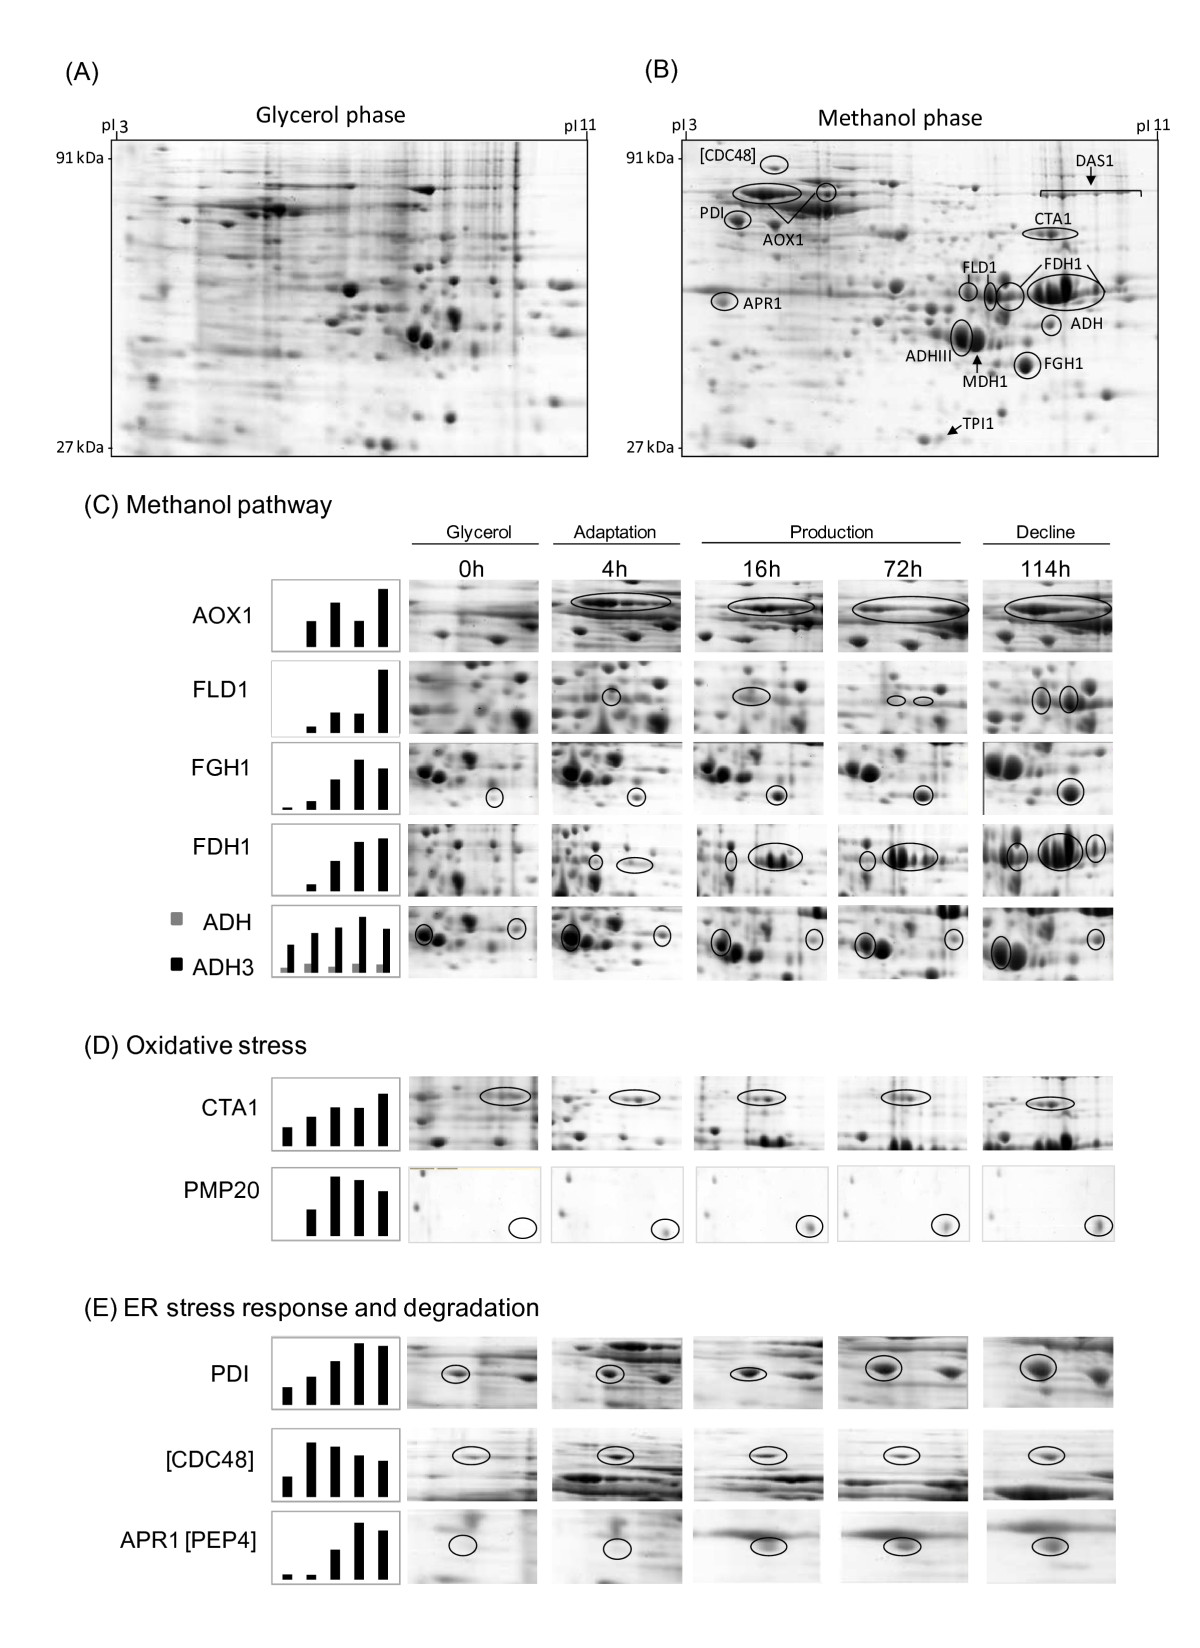 https://static-content.springer.com/image/art%3A10.1186%2F1475-2859-11-103/MediaObjects/12934_2012_Article_770_Fig1_HTML.jpg